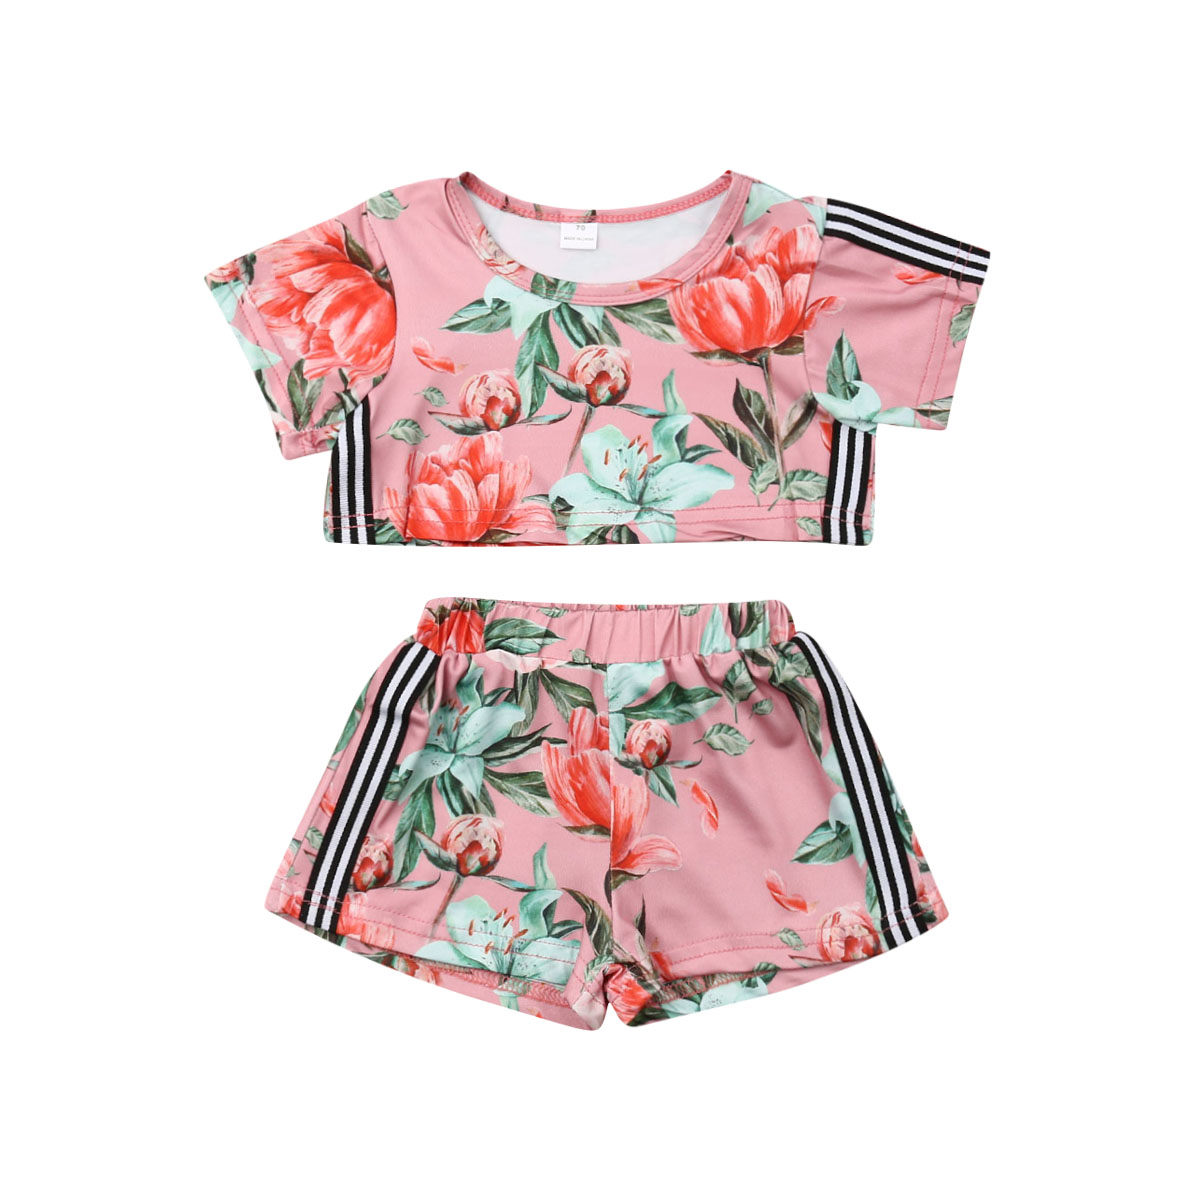 0-3Y Kids Baby Girl Floral Clothes Short Sleeve Crop Tops Shorts Pant 2PCS Outfits Summer Tracksuit Girls Clothing Set0-3Y Kids Baby Girl Floral Clothes Short Sleeve Crop Tops Shorts Pant 2PCS Outfits Summer Tracksuit Girls Clothing Set